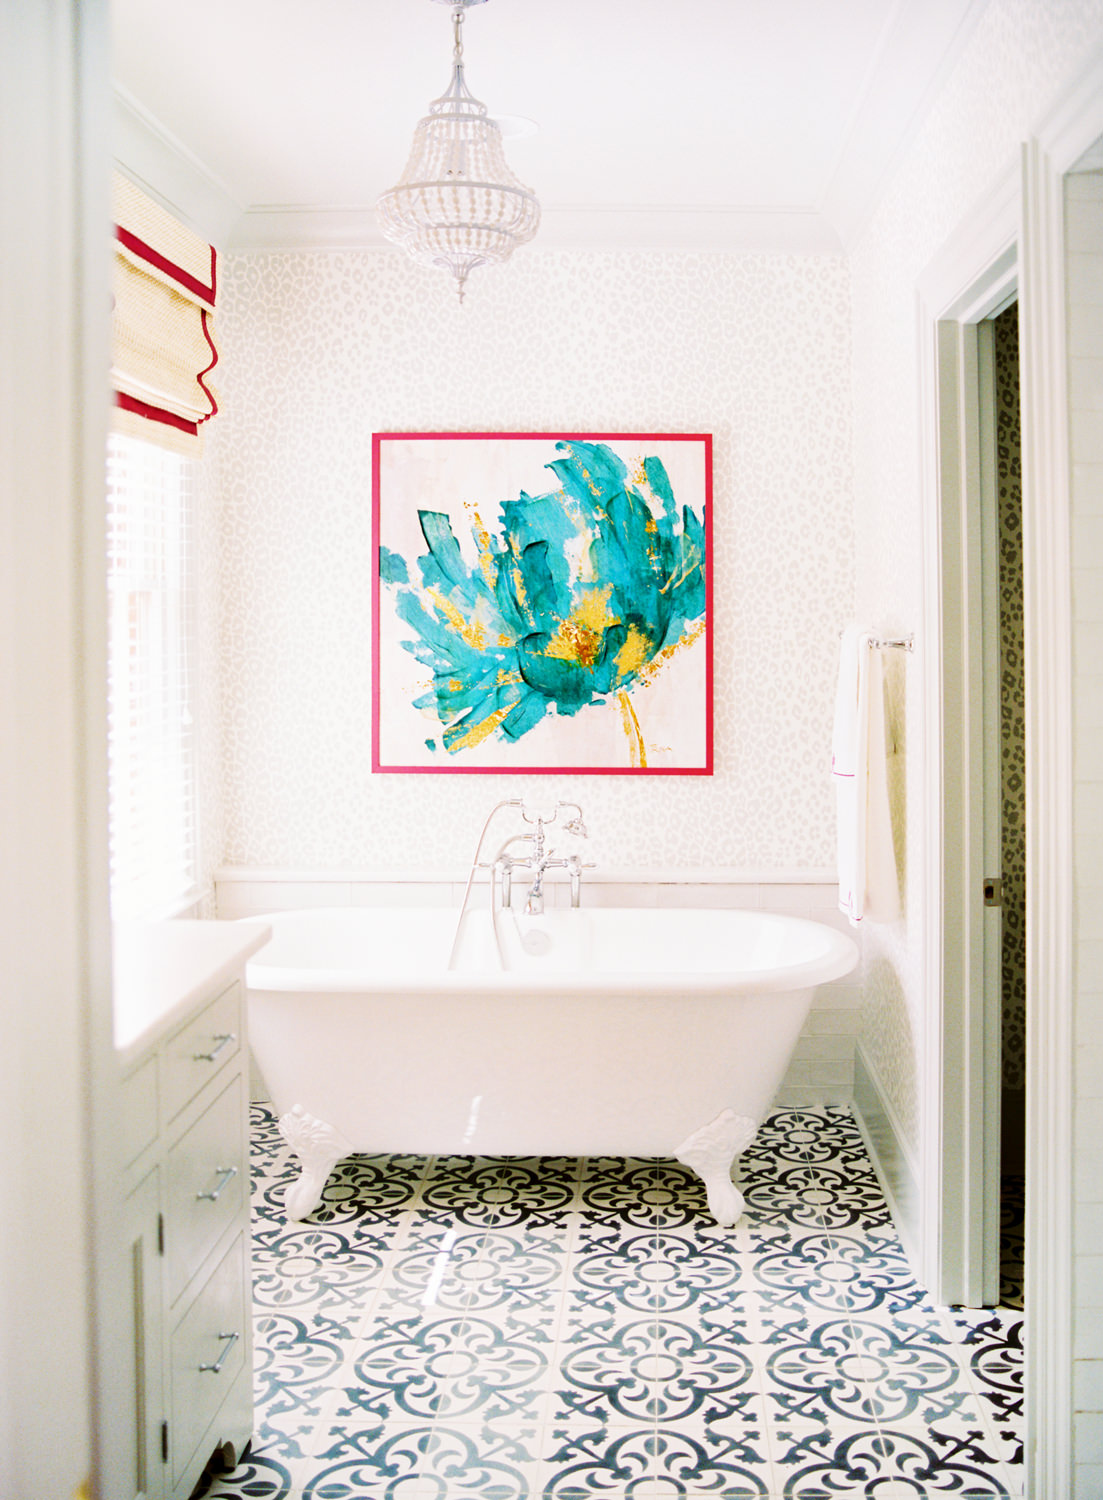 cottrell_photography_interiors-016